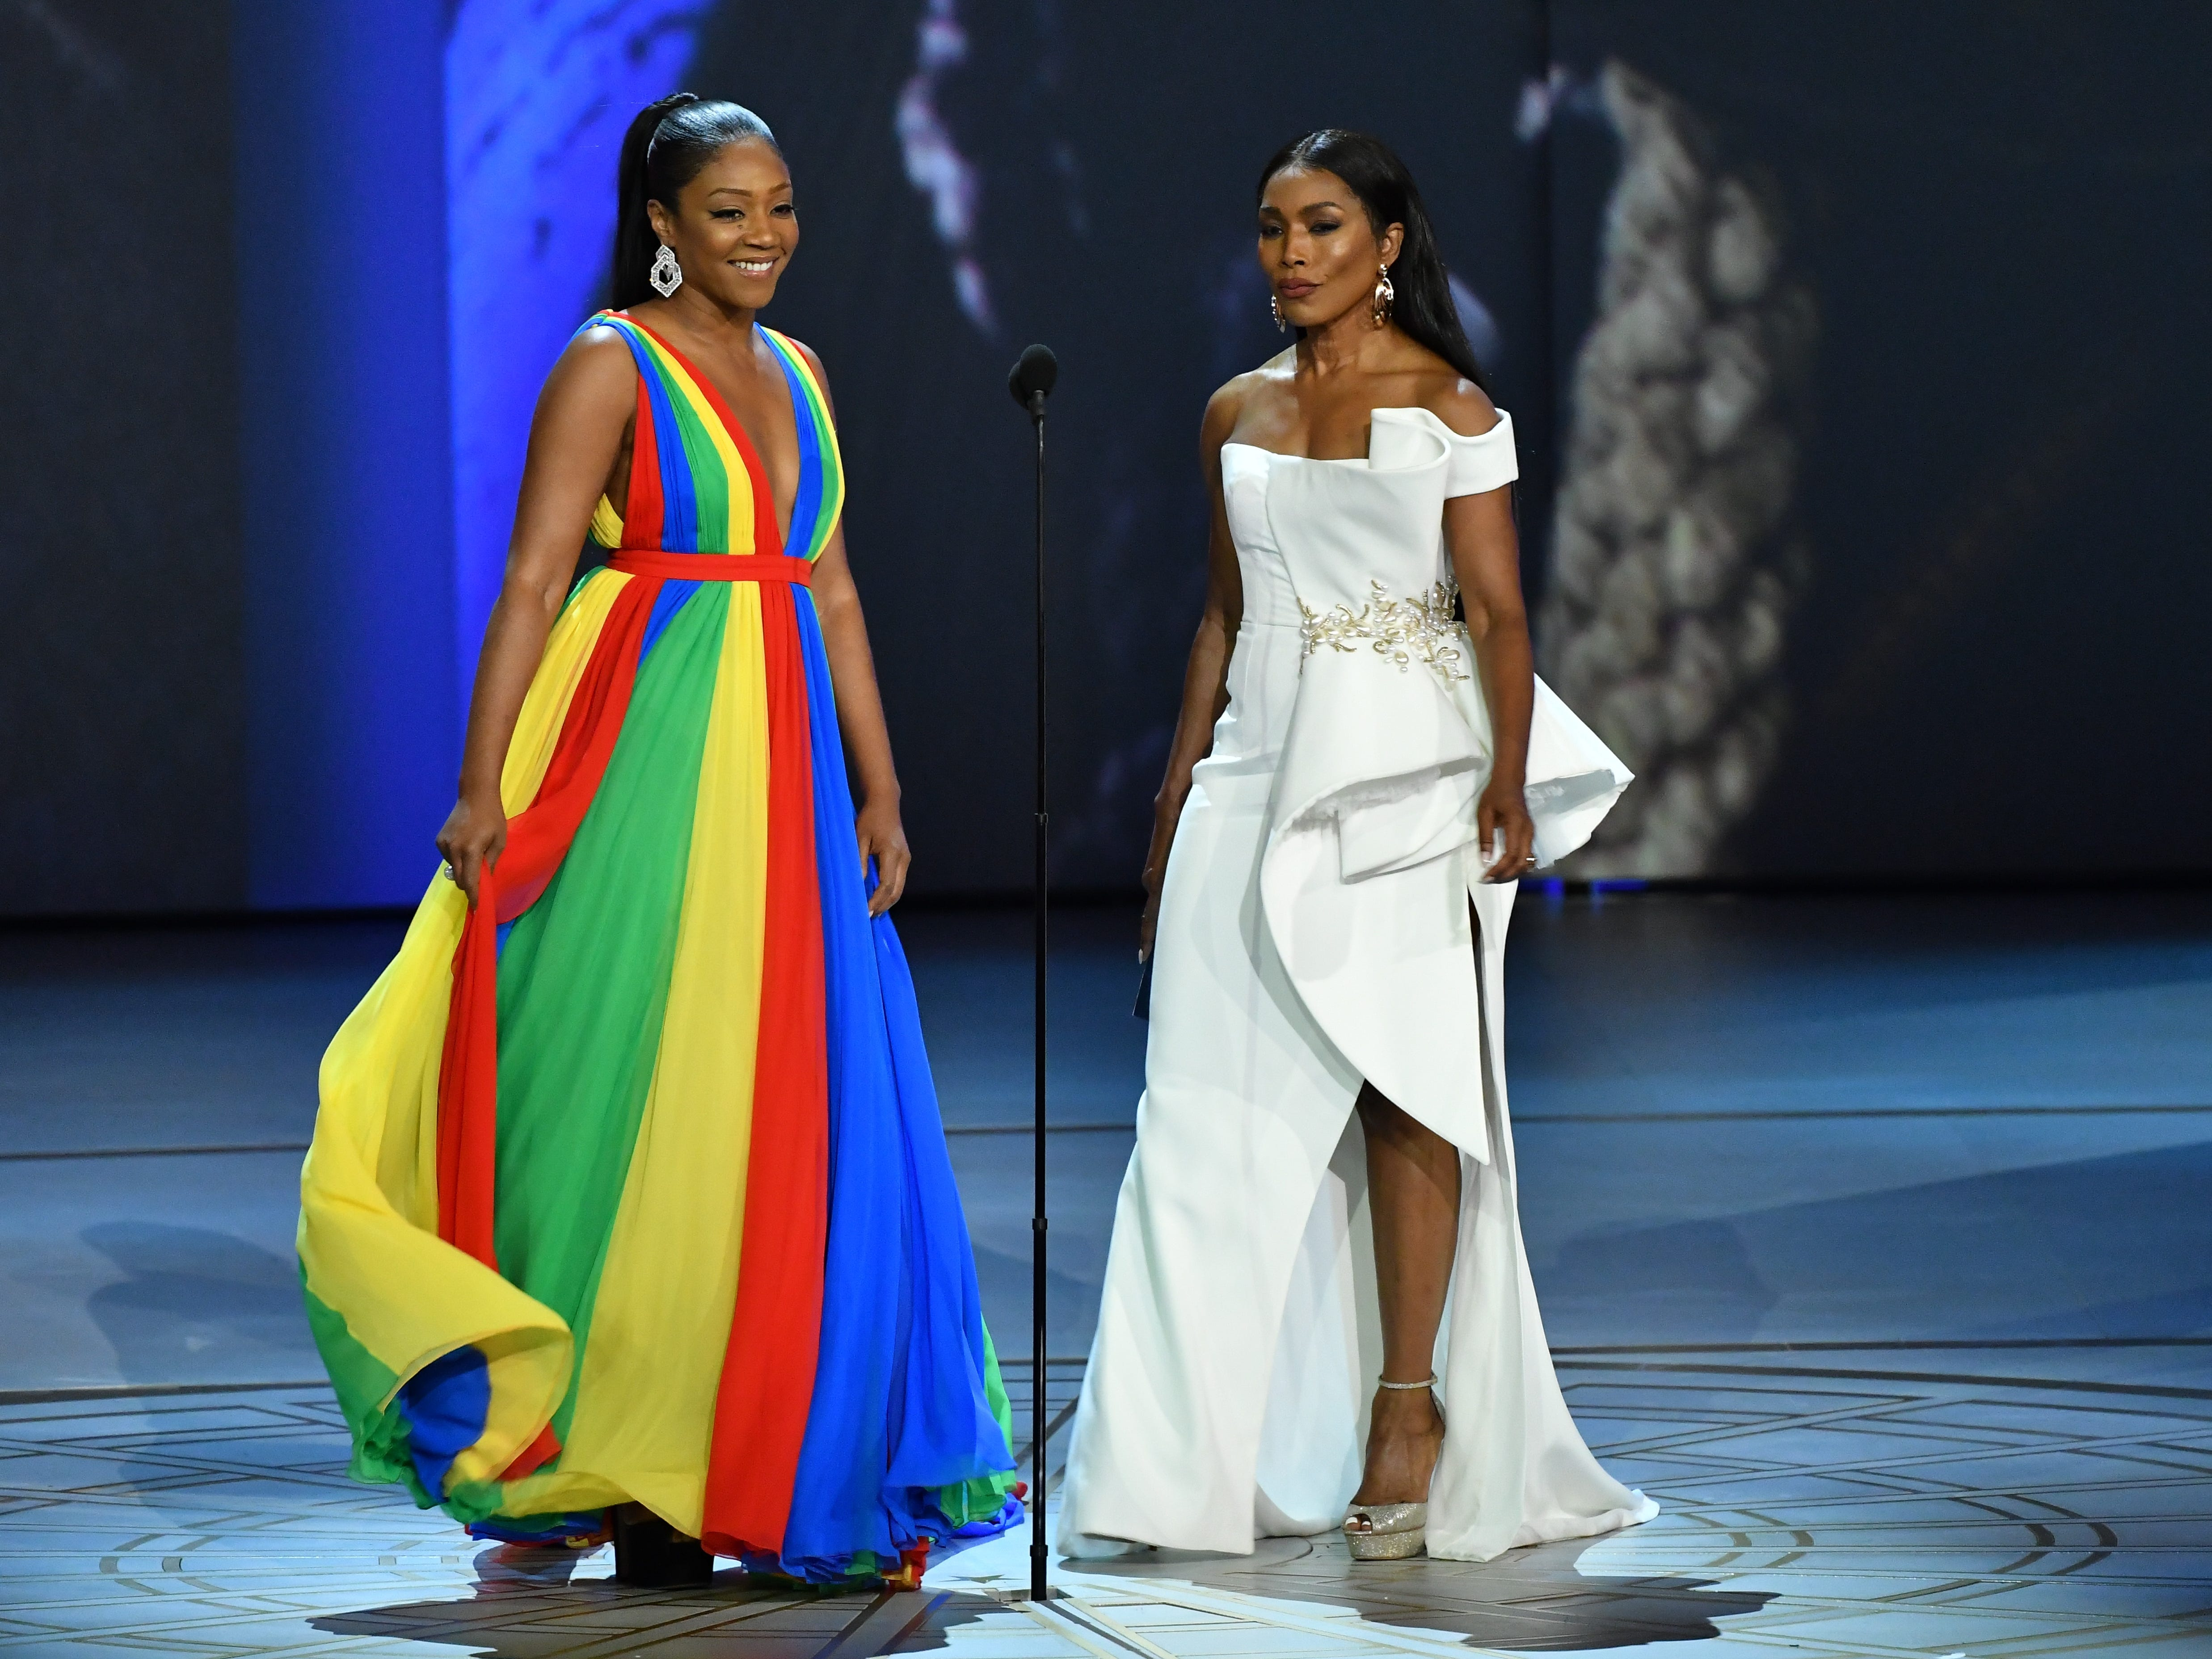 Tiffany Haddish, left, and Angela Bassett present the award for lead actress in a comedy series.